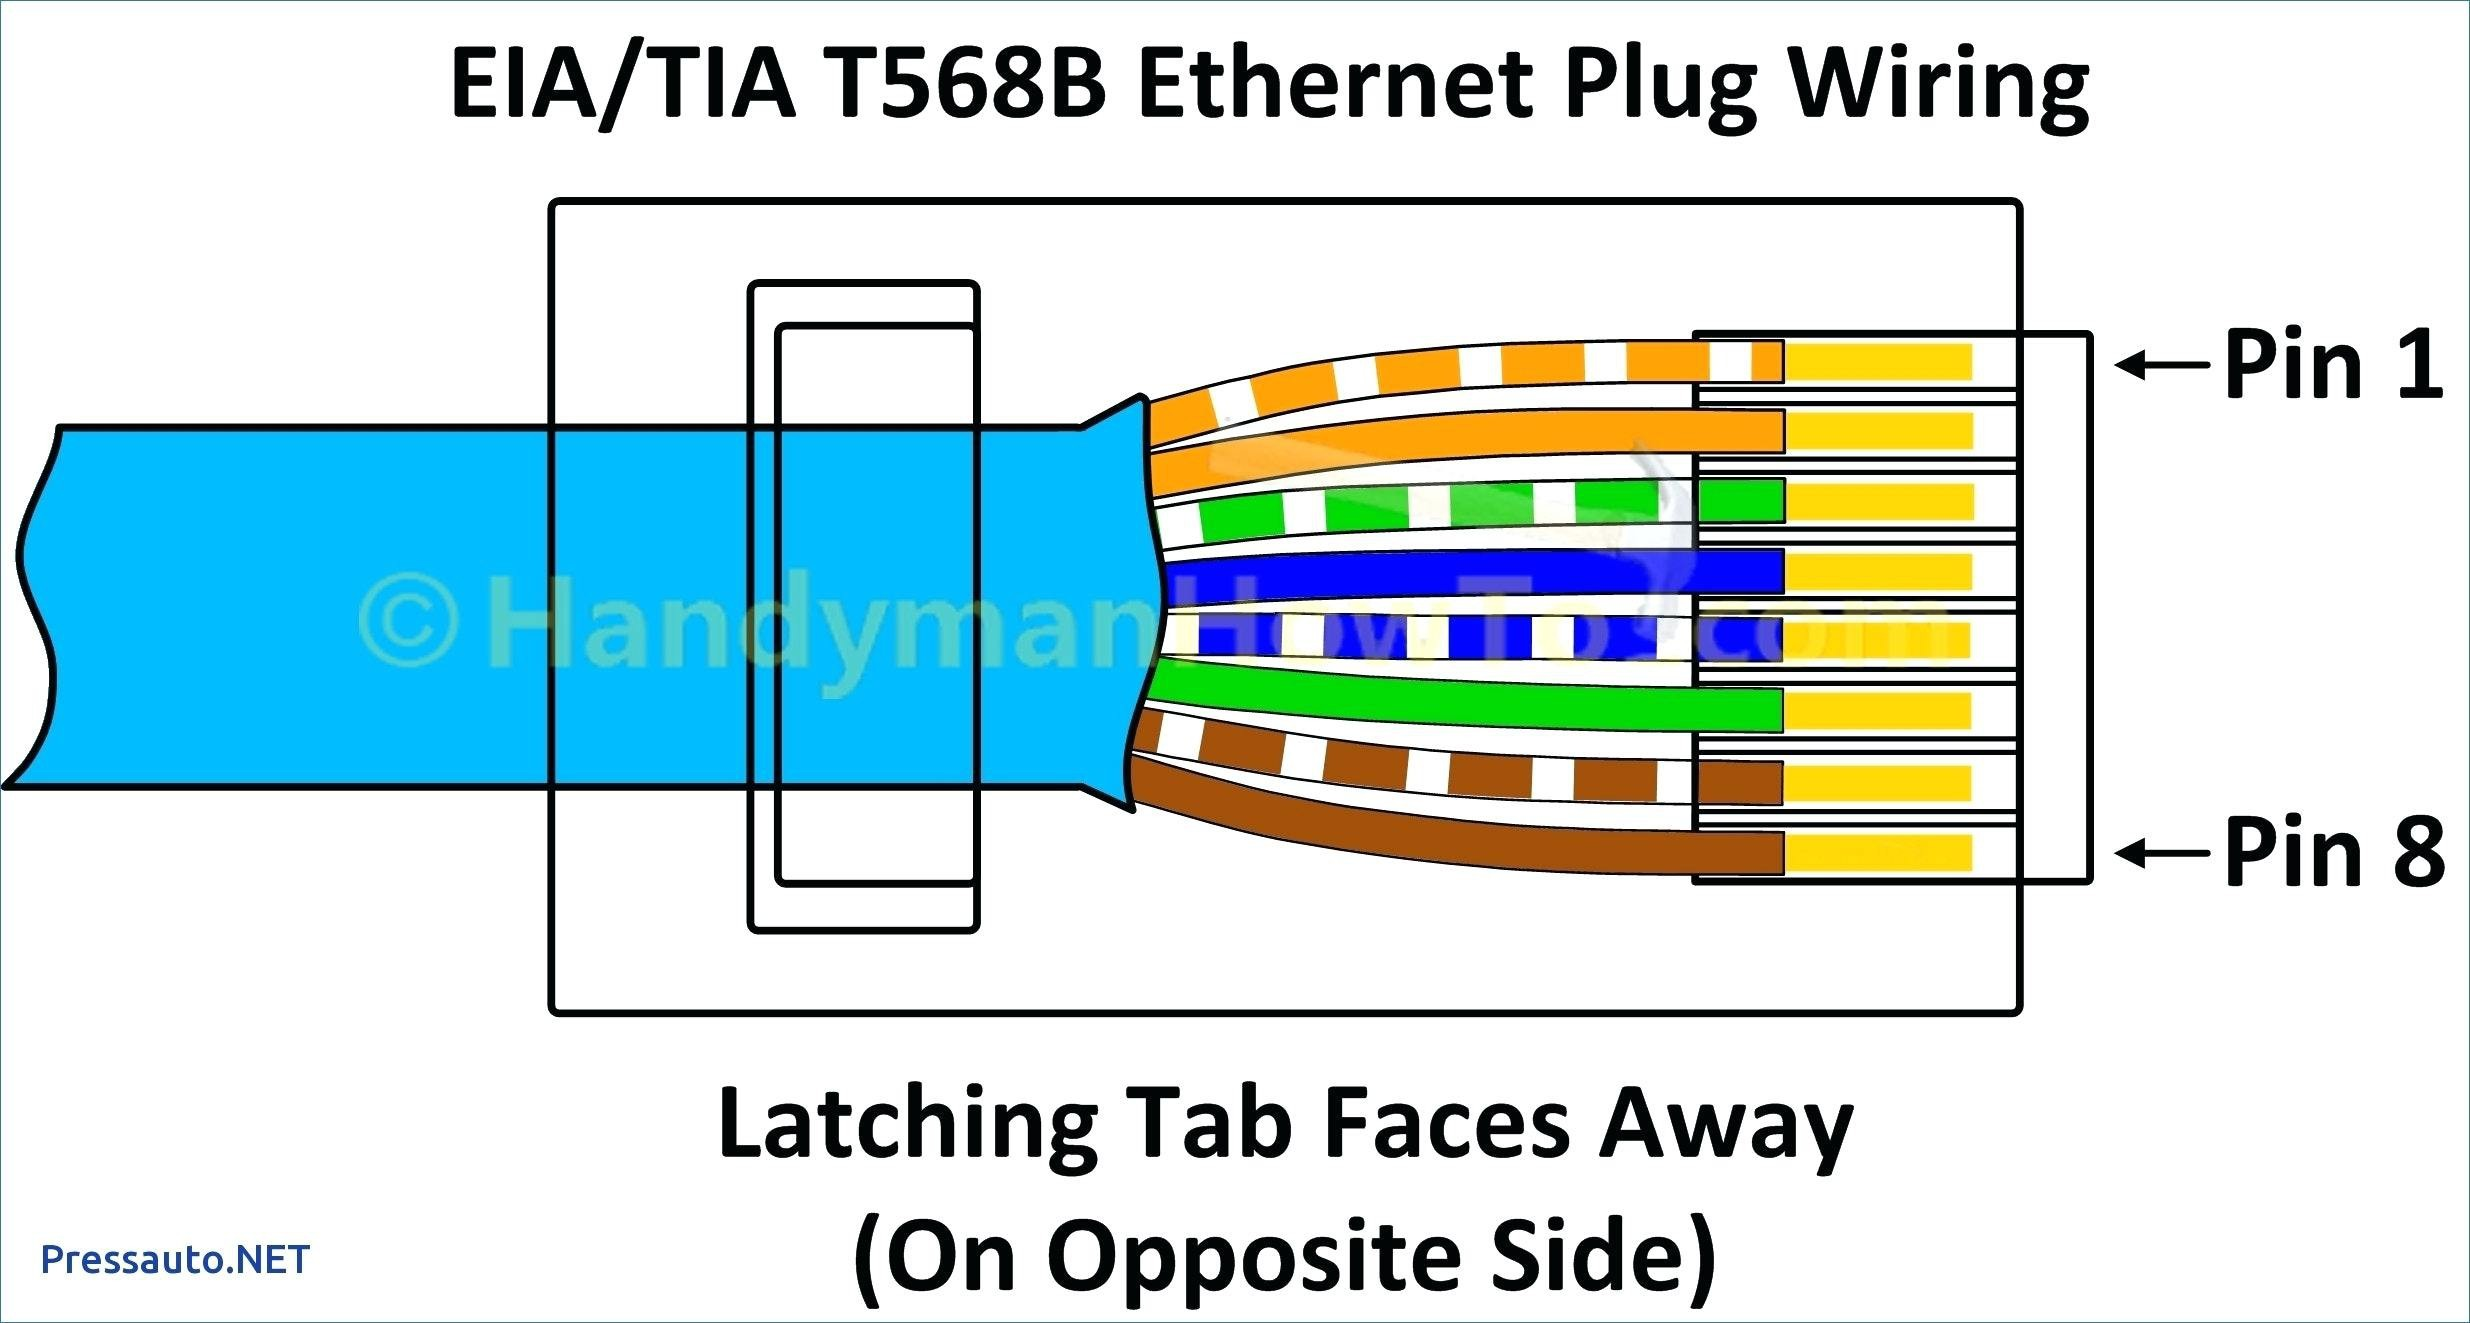 Full Size of Telephone Wiring Diagram For Broadband Using Jack New graph Pleasant Archived Wiring